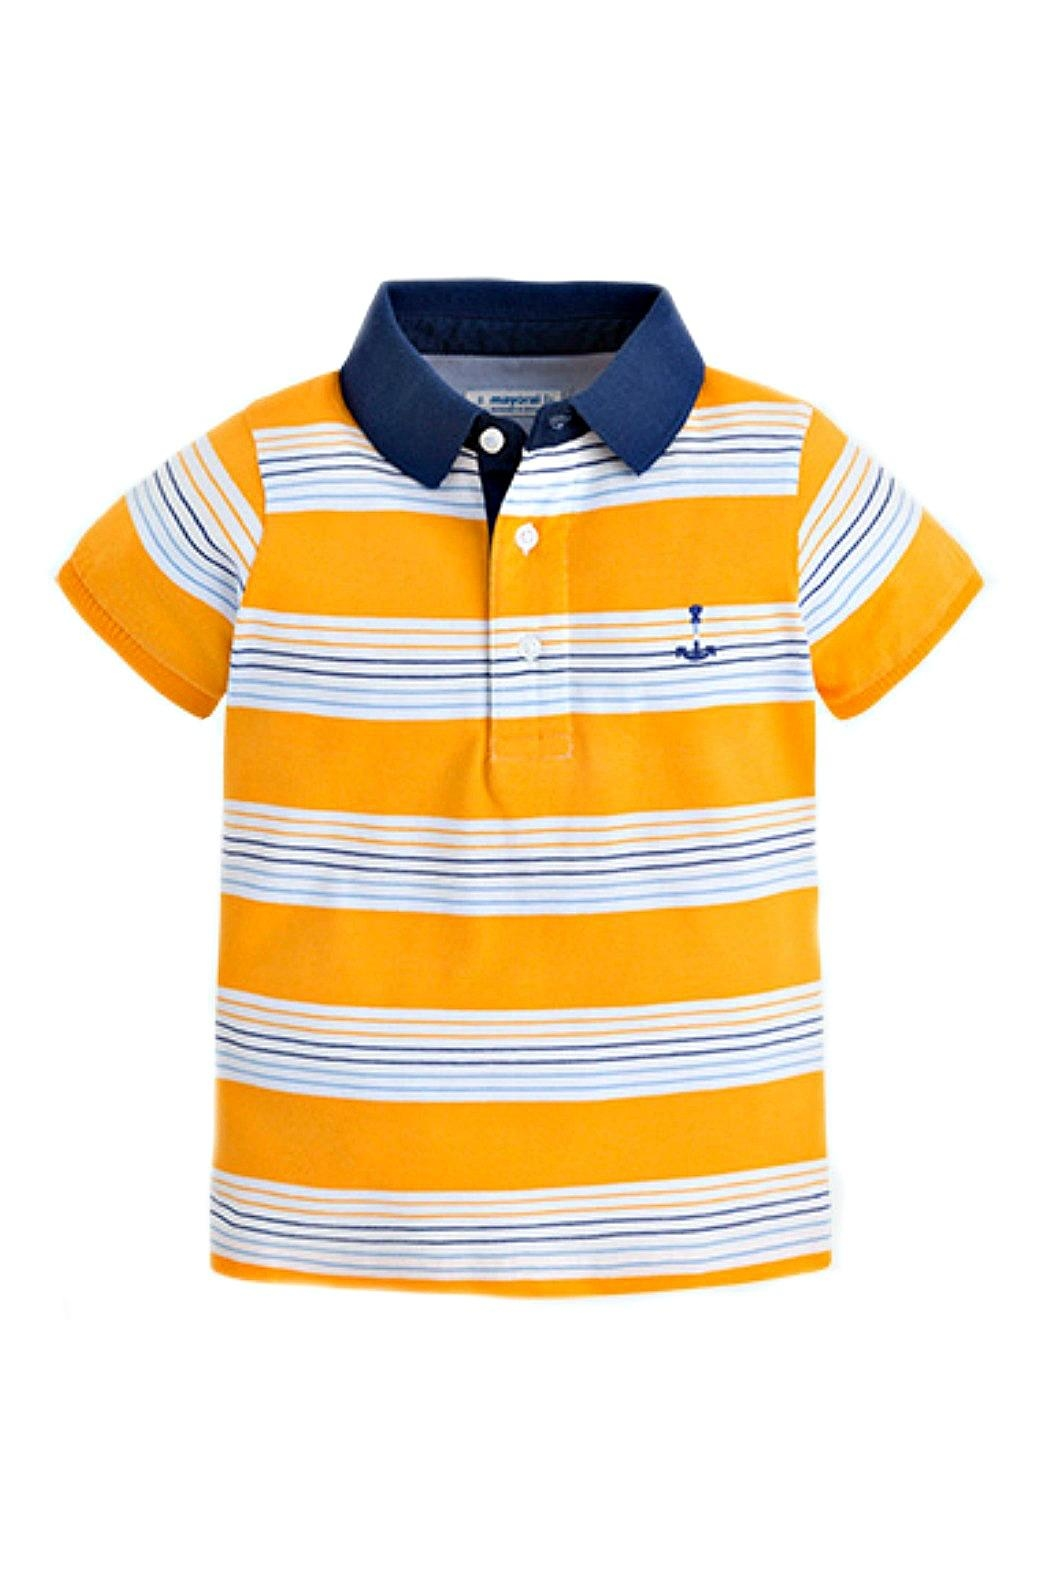 Mayoral Boys Striped Polo From South Carolina By The Childrens